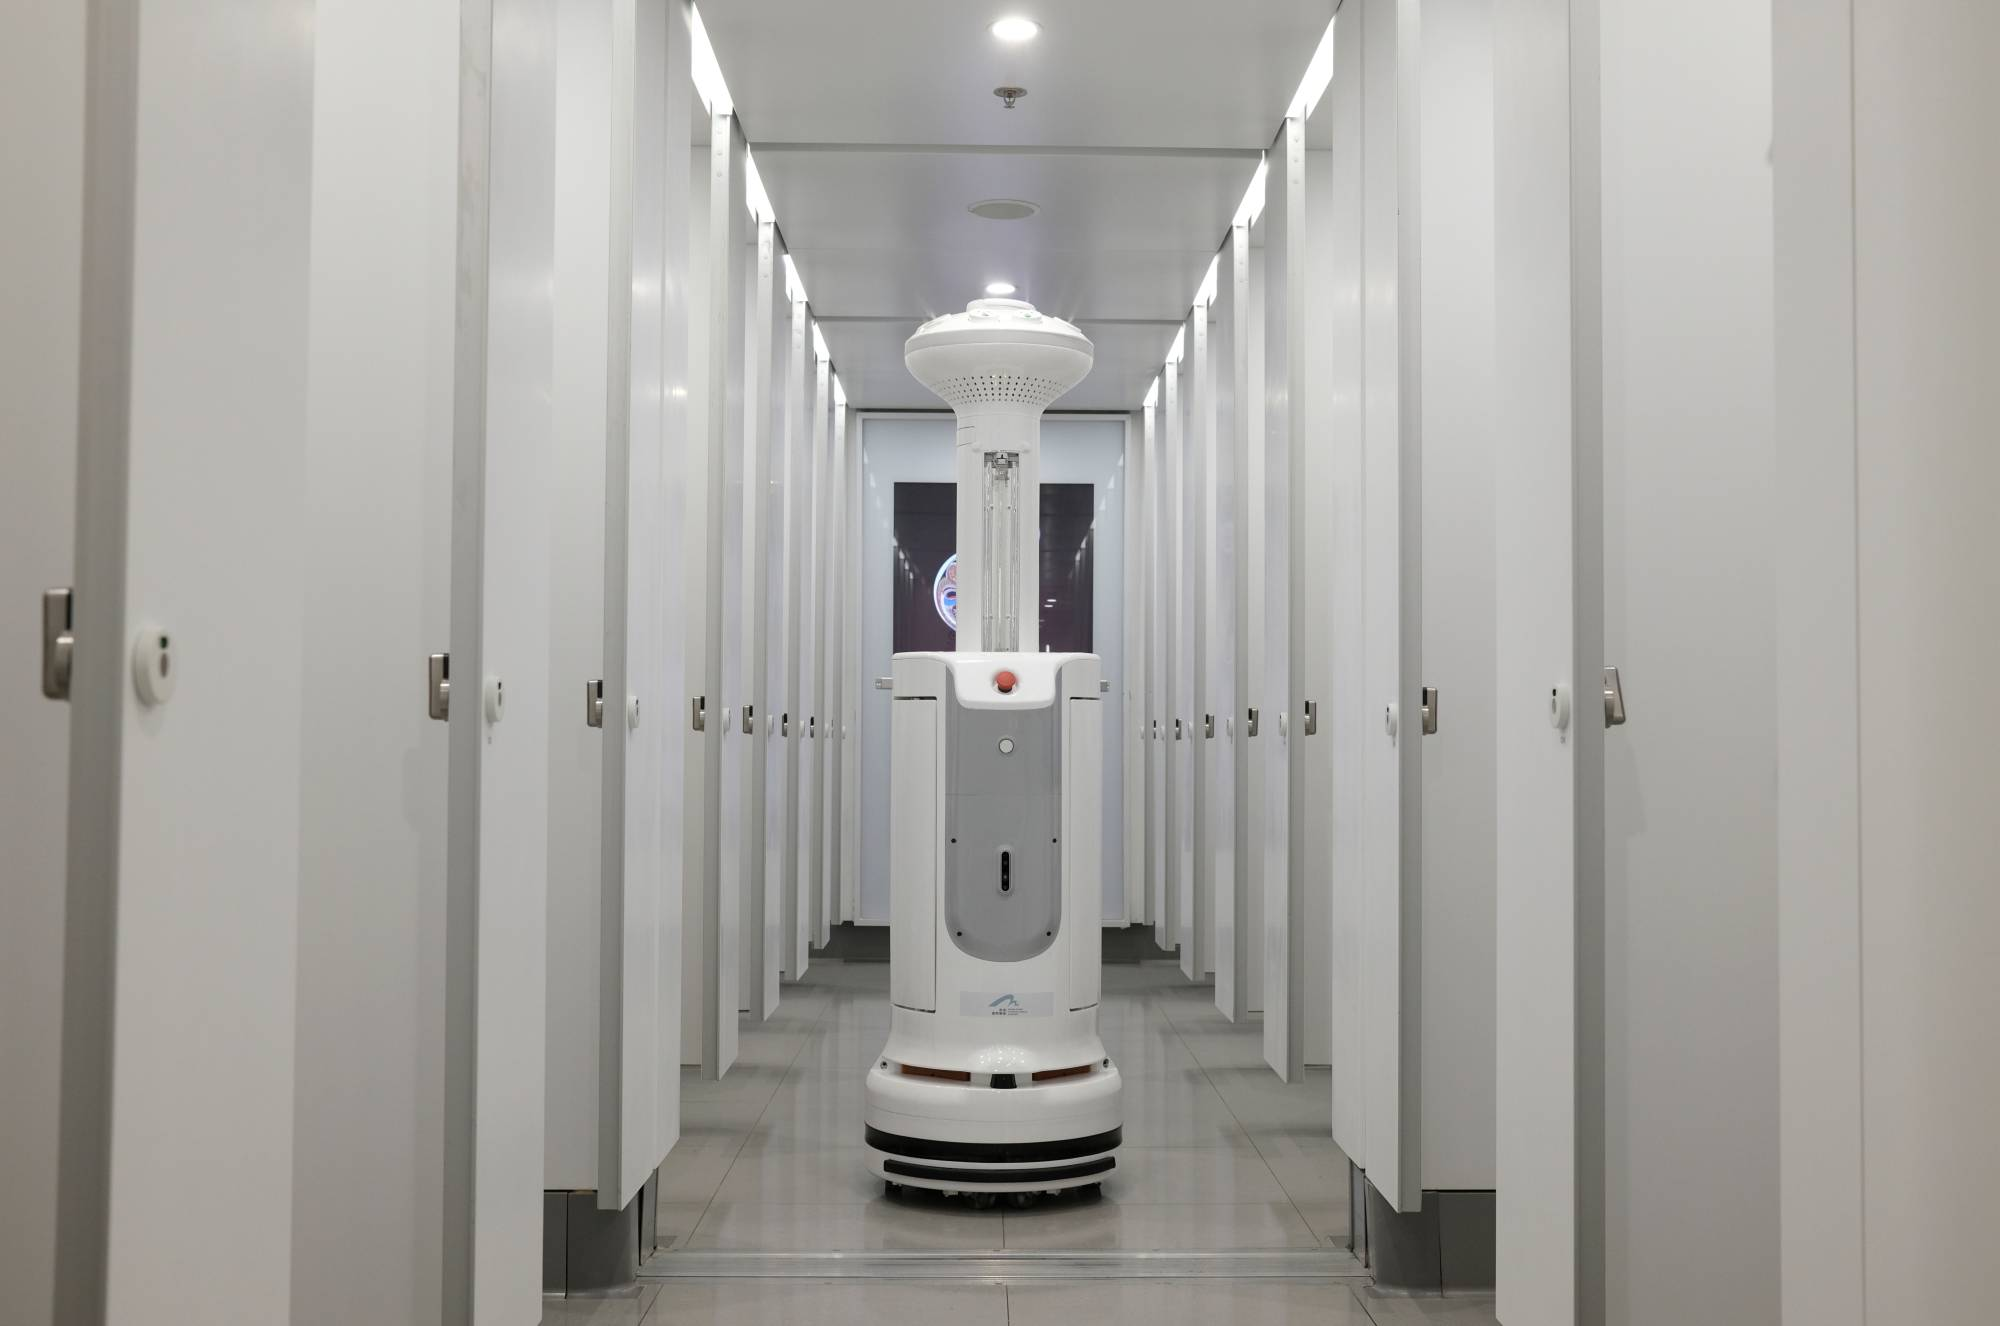 An Intelligent Sterilization Robot, produced by China's TMiRob, uses UV light to sanitize a bathroom amid the coronavirus pandemic, at Hong Kong International Airport on Thursday. Researchers in the city have found that patients suffering milder illness caused by the new coronavirus recover more quickly if they are treated with a three-drug antiviral cocktail soon after symptoms appear. | REUTERS